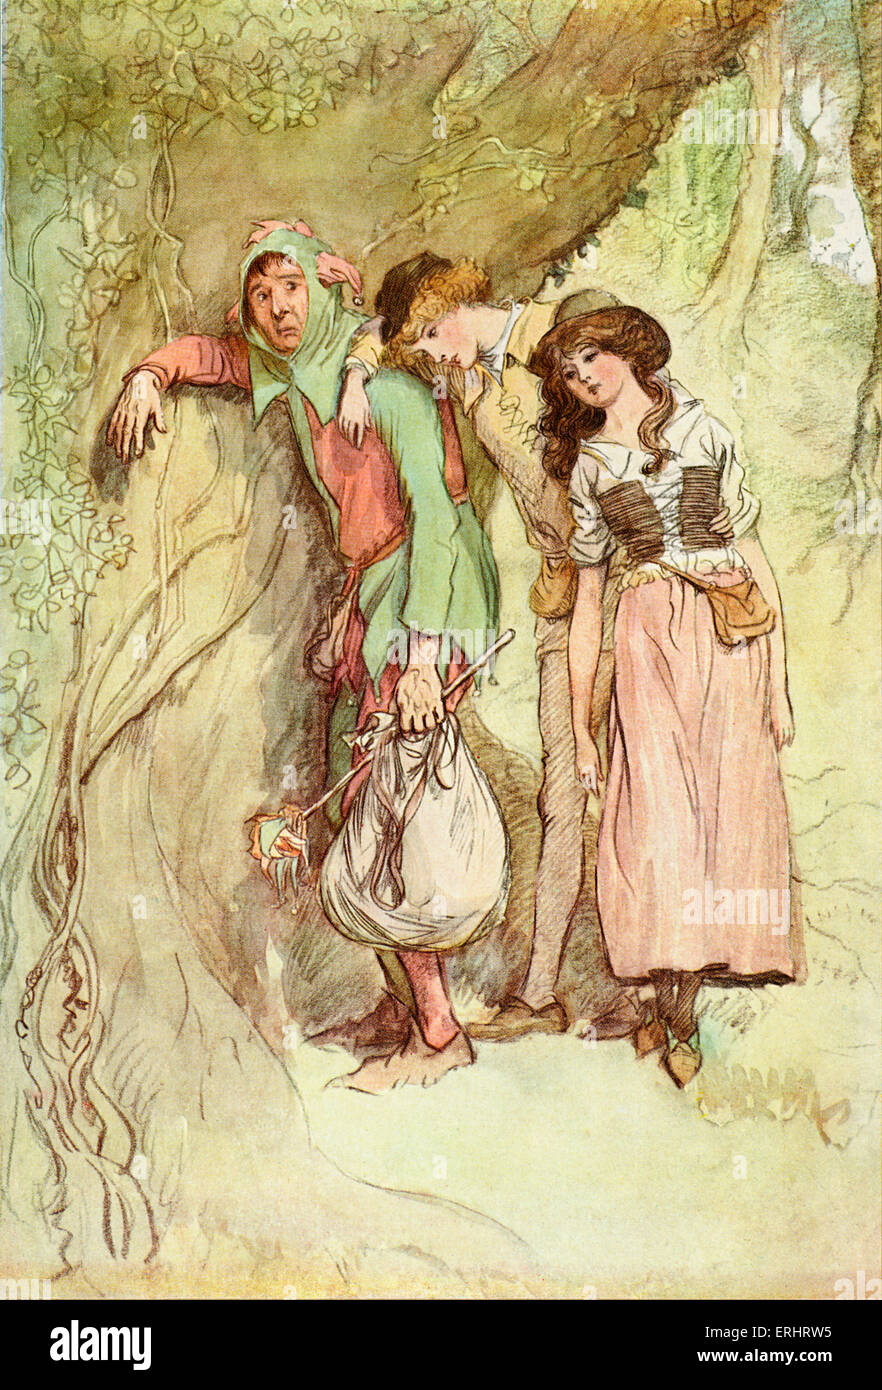 a description of as you like it a comedy by shakespeare Plot summary of shakespeare's as you like it: orlando, the youngest son of sir  roland de boys, is ill treated by his brother oliver when he responds to the.